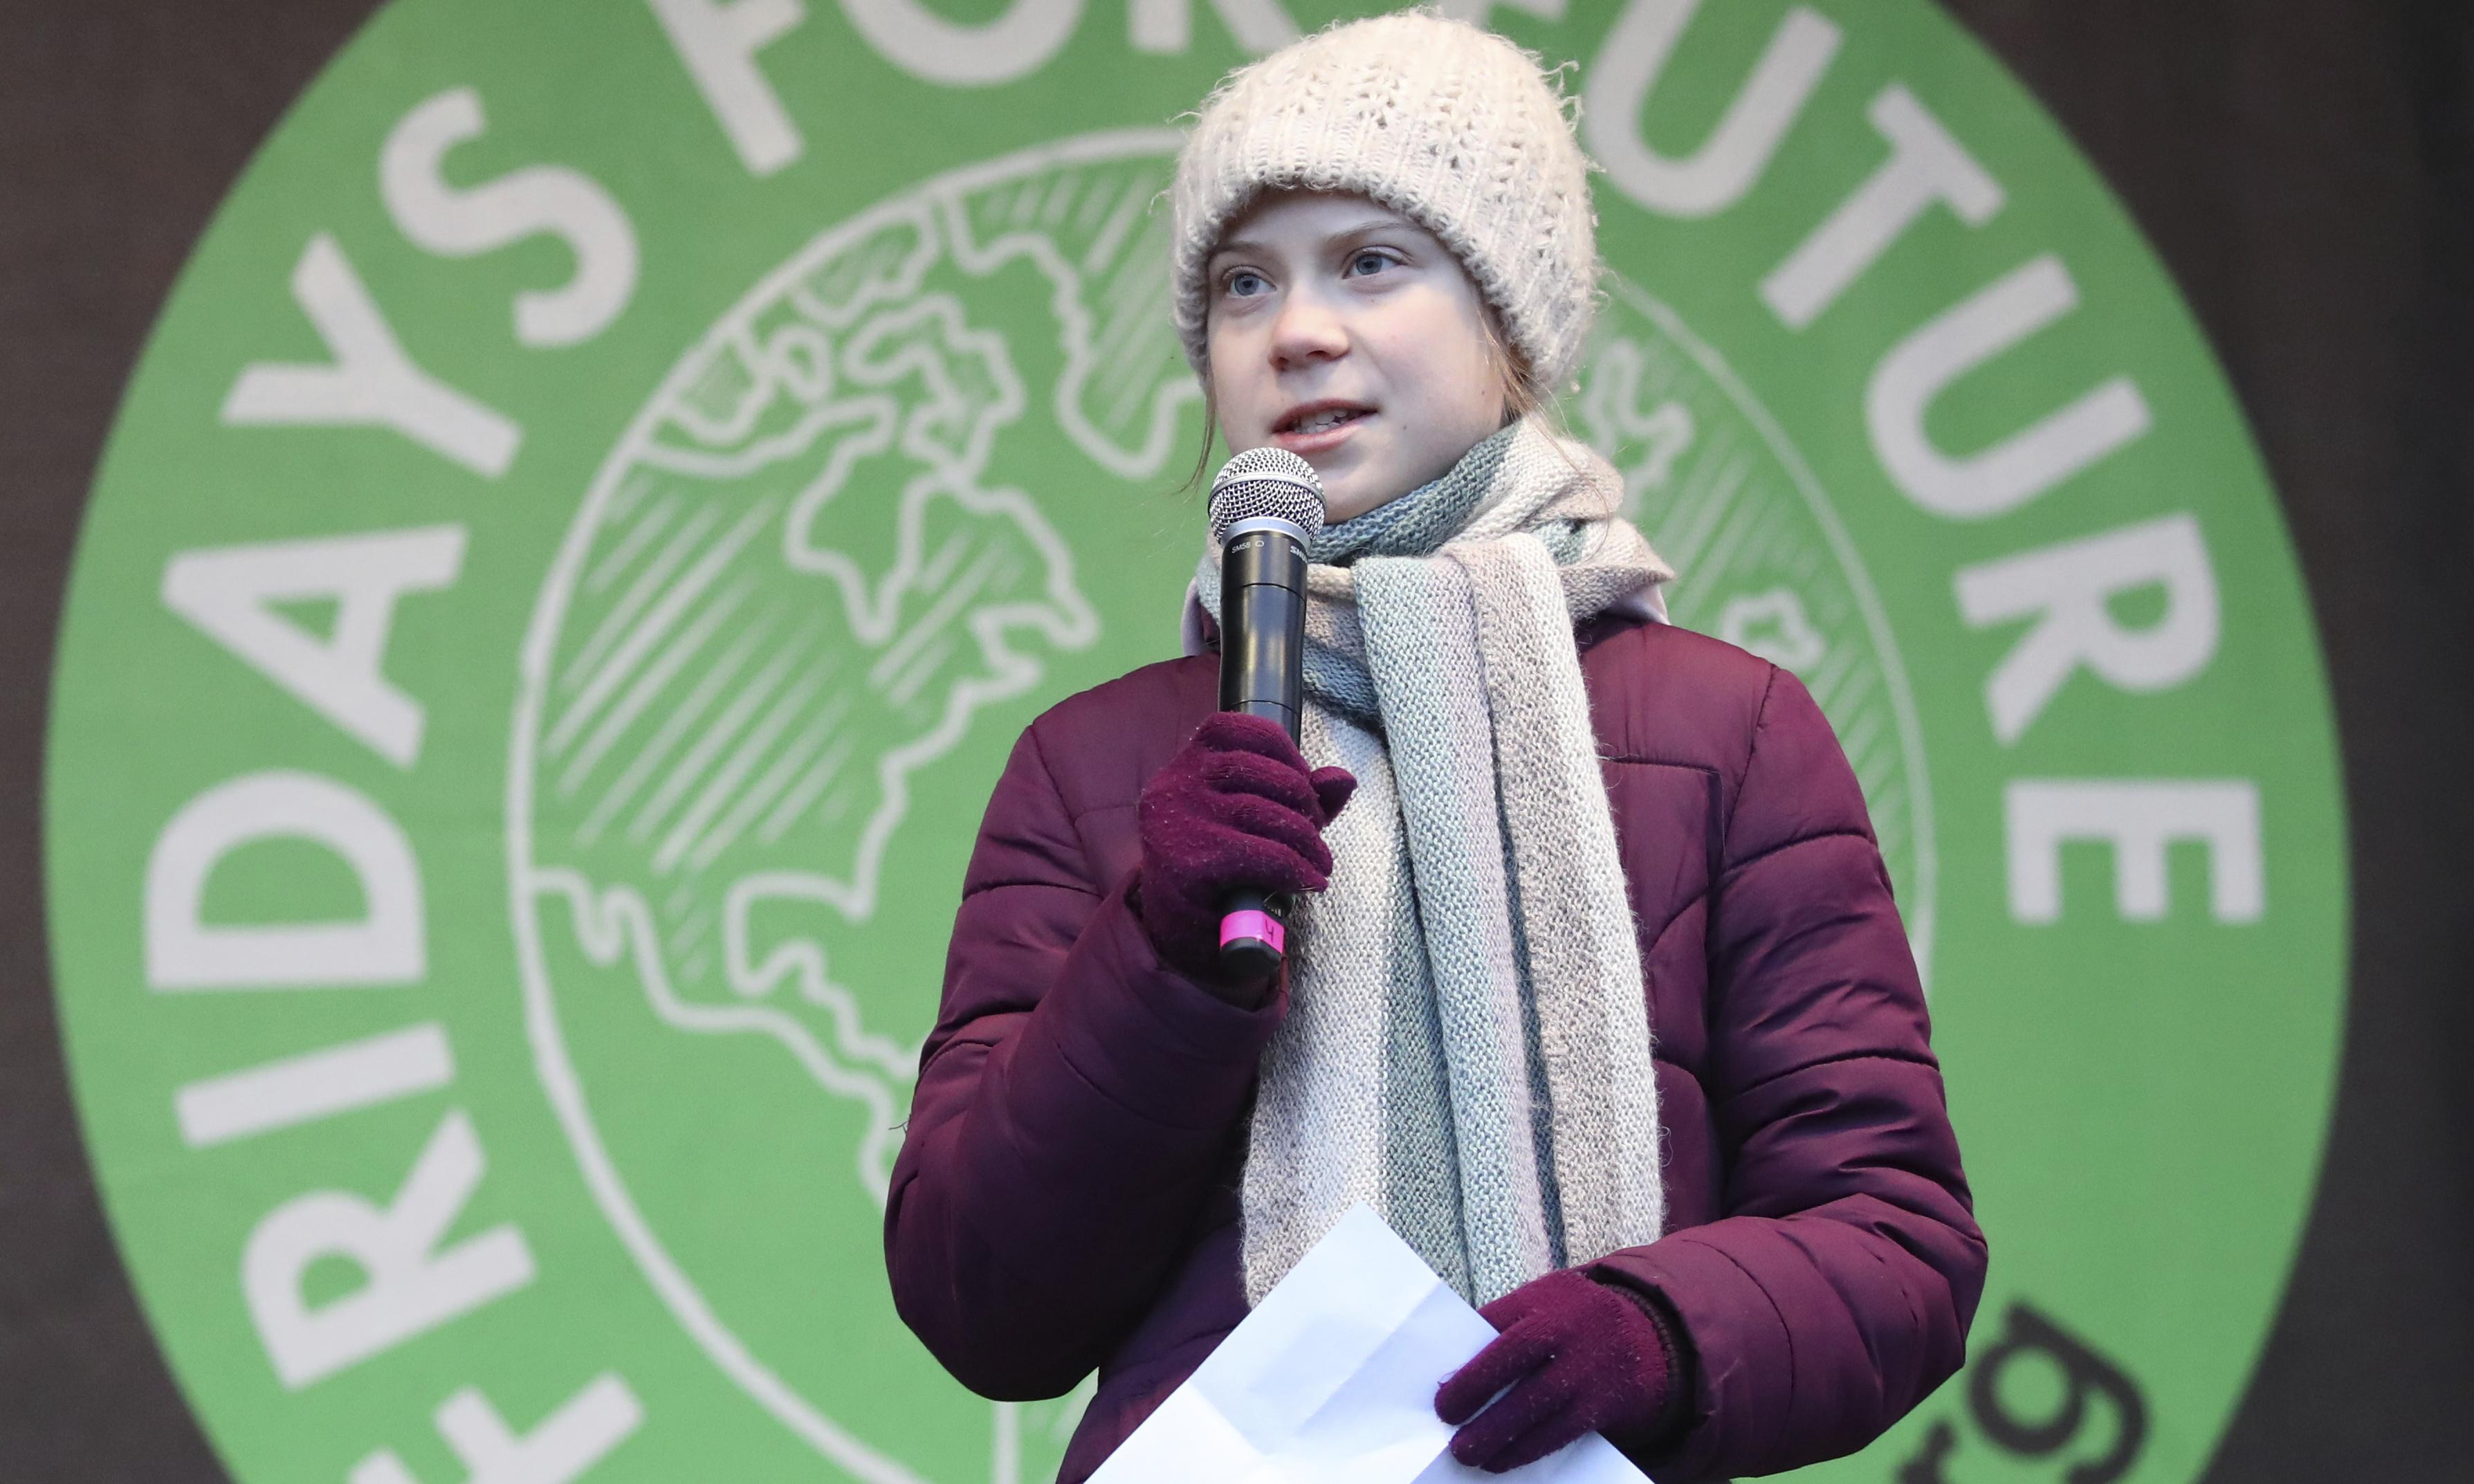 Greta Thunberg to visit Bristol for youth climate protest